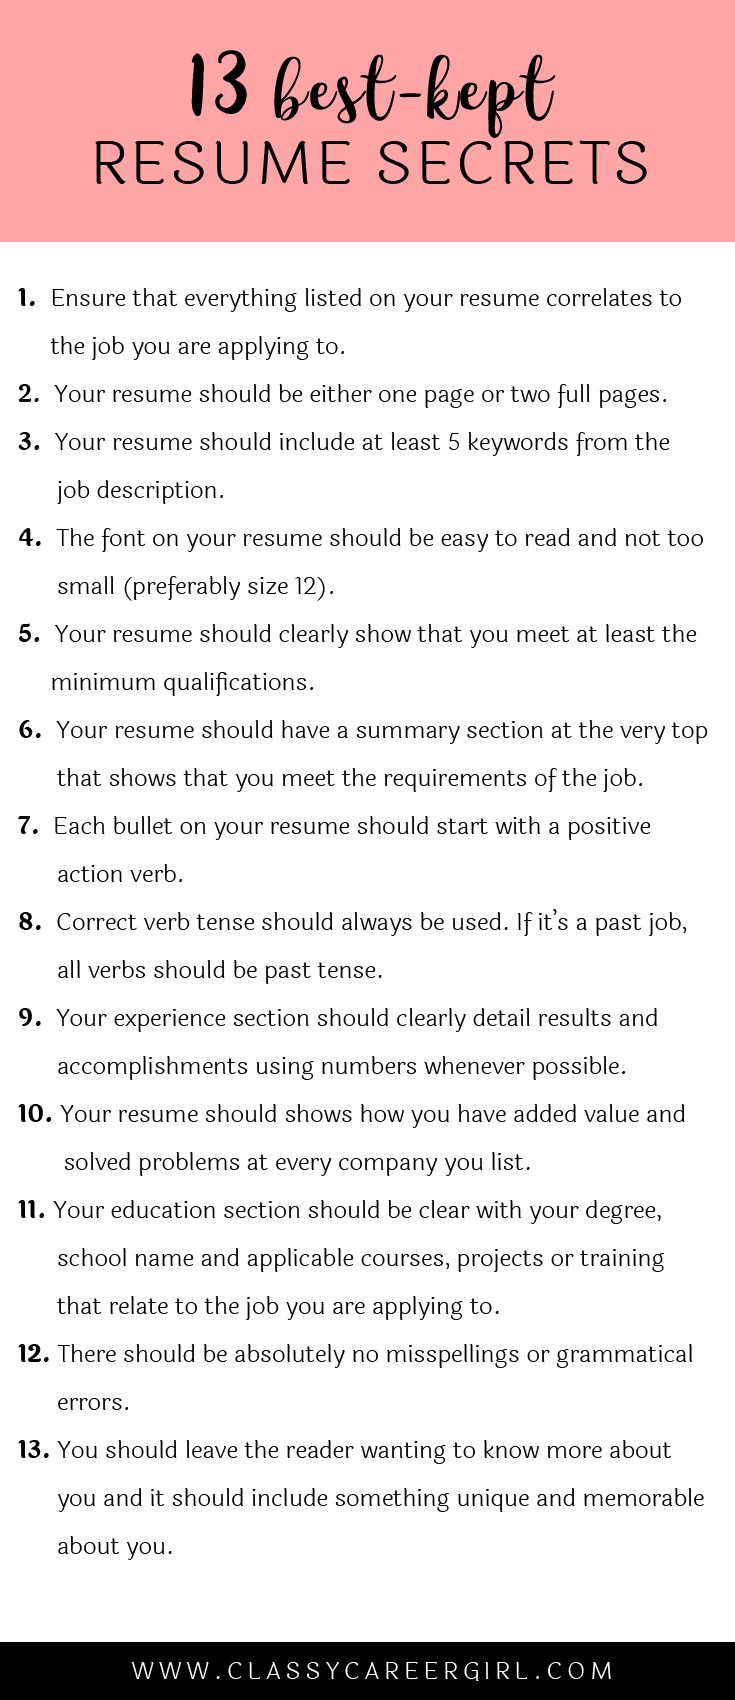 Opposenewapstandardsus  Splendid  Ideas About Resume On Pinterest  Cv Format Resume Cv And  With Inspiring Some Hiring Managers Will Toss Your Resume Out If You Dont Know These  With Breathtaking Combination Resume Template Word Also Best Cover Letter For Resume In Addition Internship Objective Resume And Good Objective To Put On A Resume As Well As Skills For A Job Resume Additionally Summer Camp Counselor Resume From Pinterestcom With Opposenewapstandardsus  Inspiring  Ideas About Resume On Pinterest  Cv Format Resume Cv And  With Breathtaking Some Hiring Managers Will Toss Your Resume Out If You Dont Know These  And Splendid Combination Resume Template Word Also Best Cover Letter For Resume In Addition Internship Objective Resume From Pinterestcom